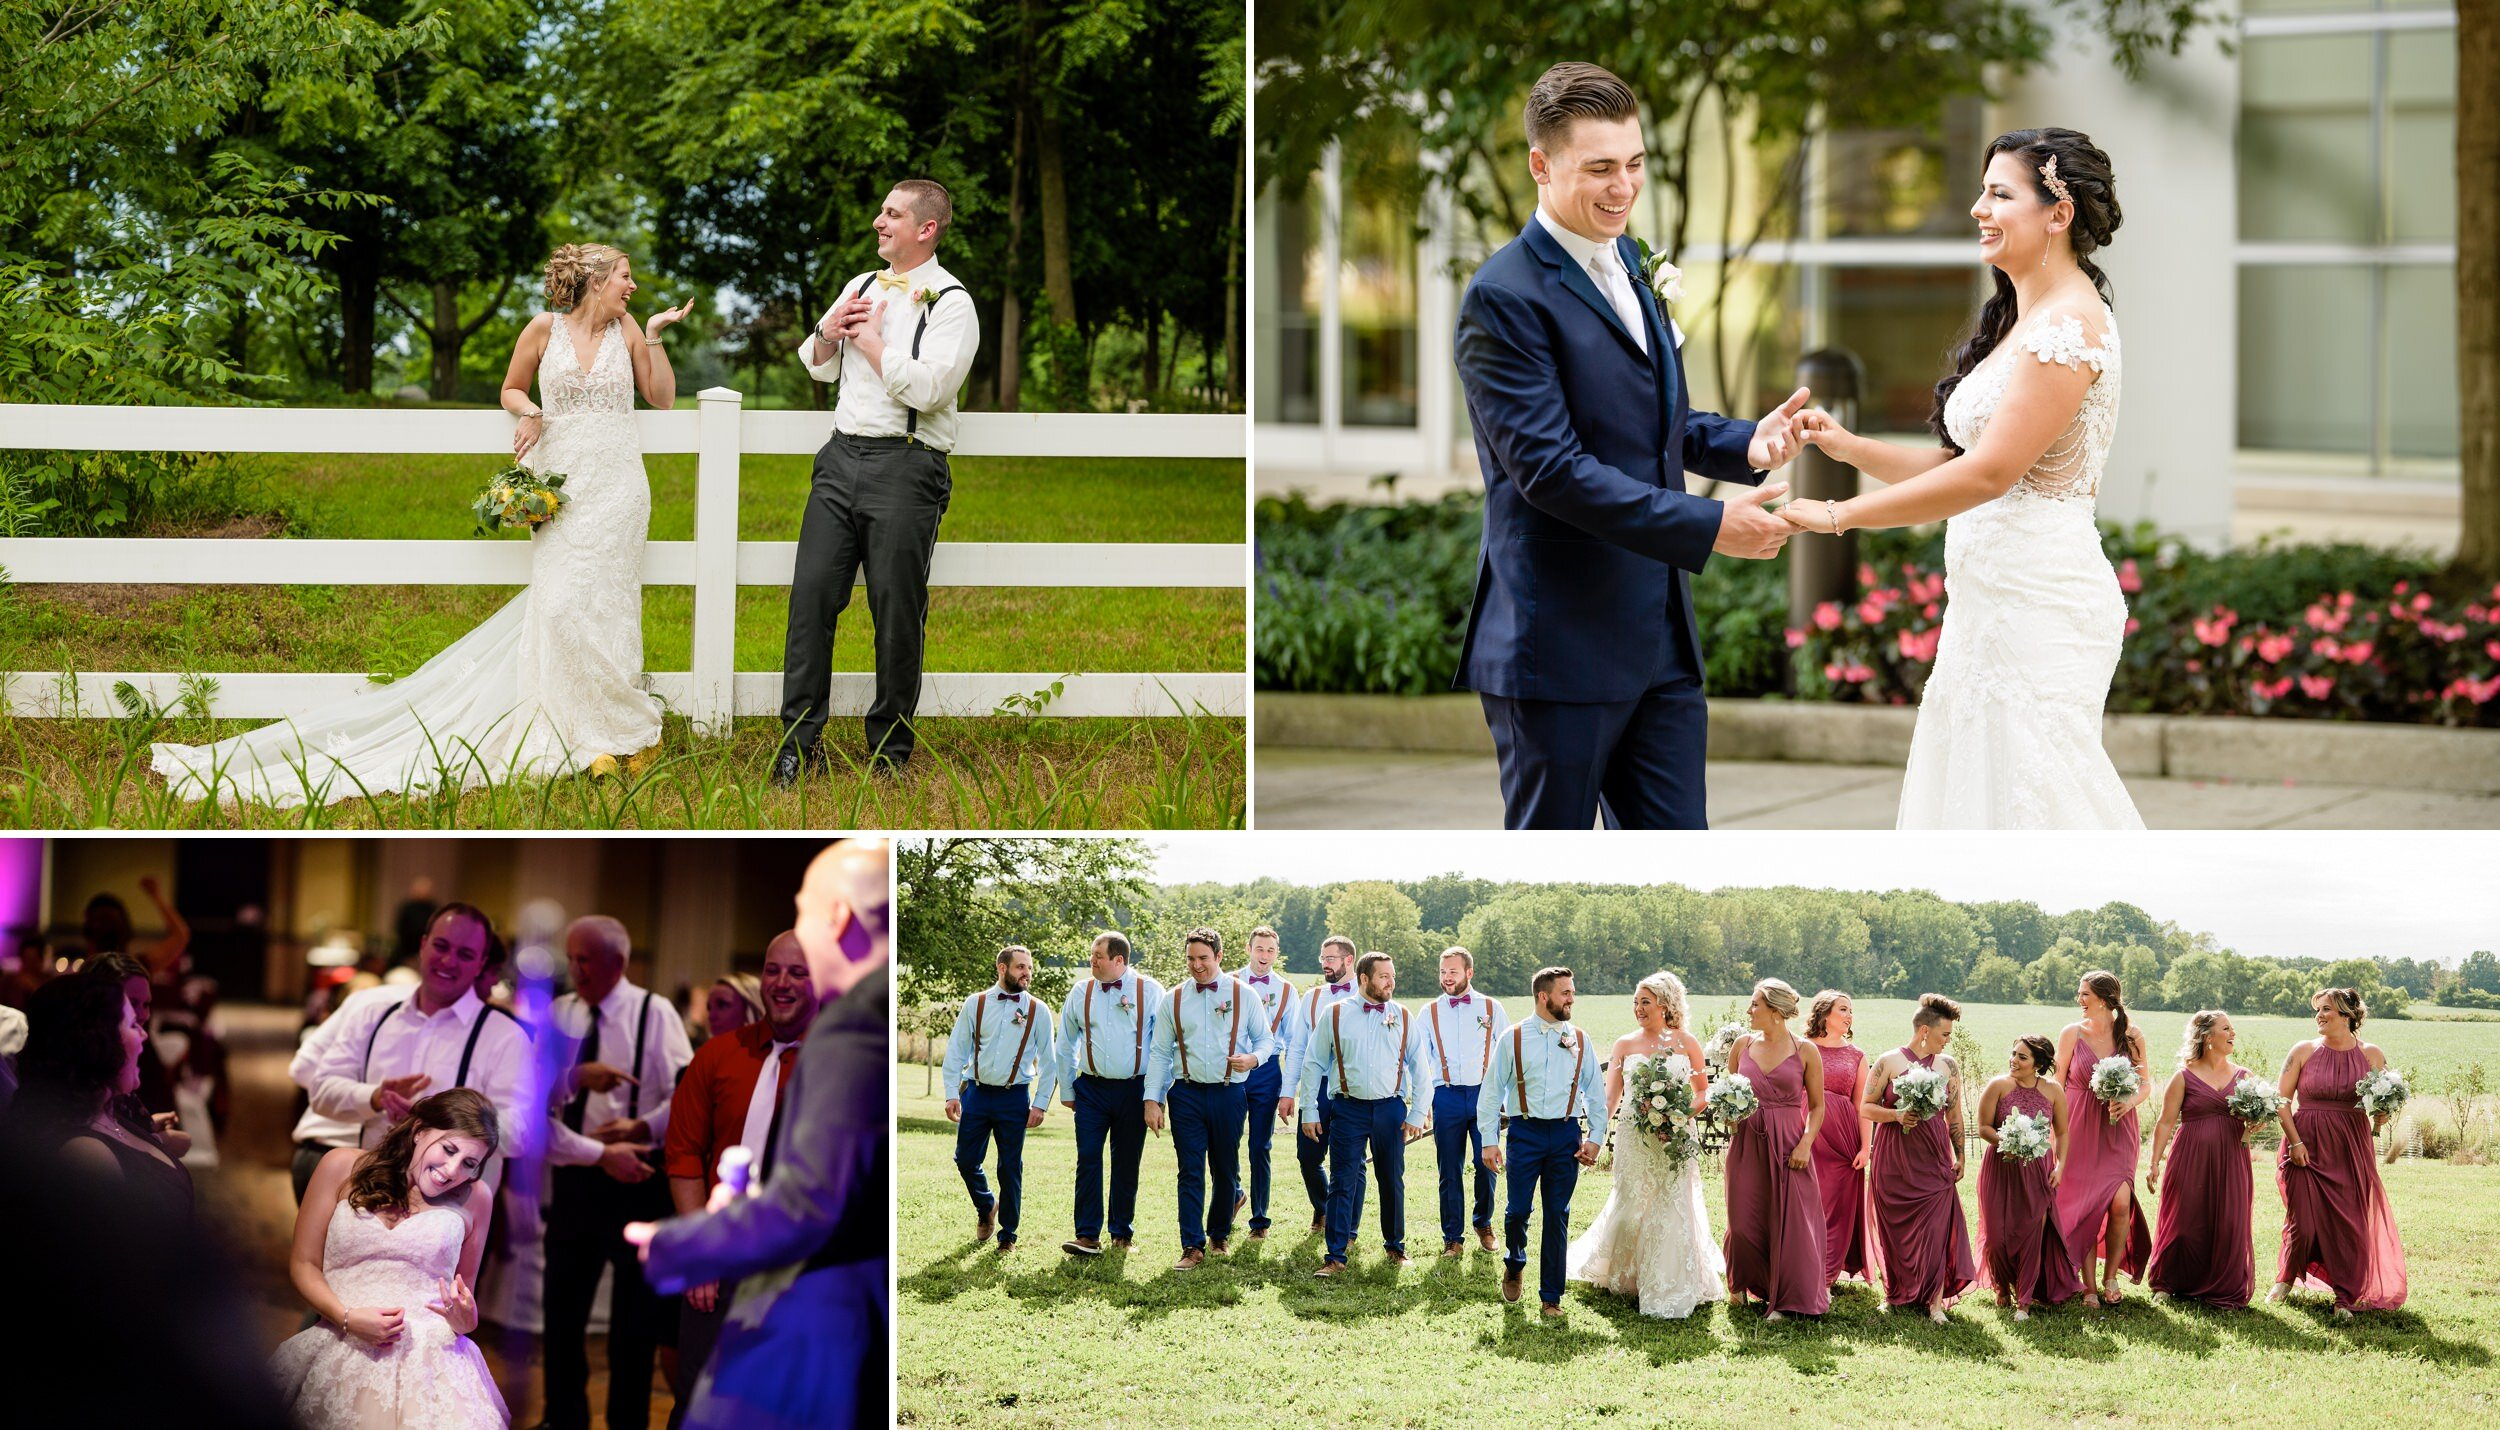 Modern and Candid wedding photography.